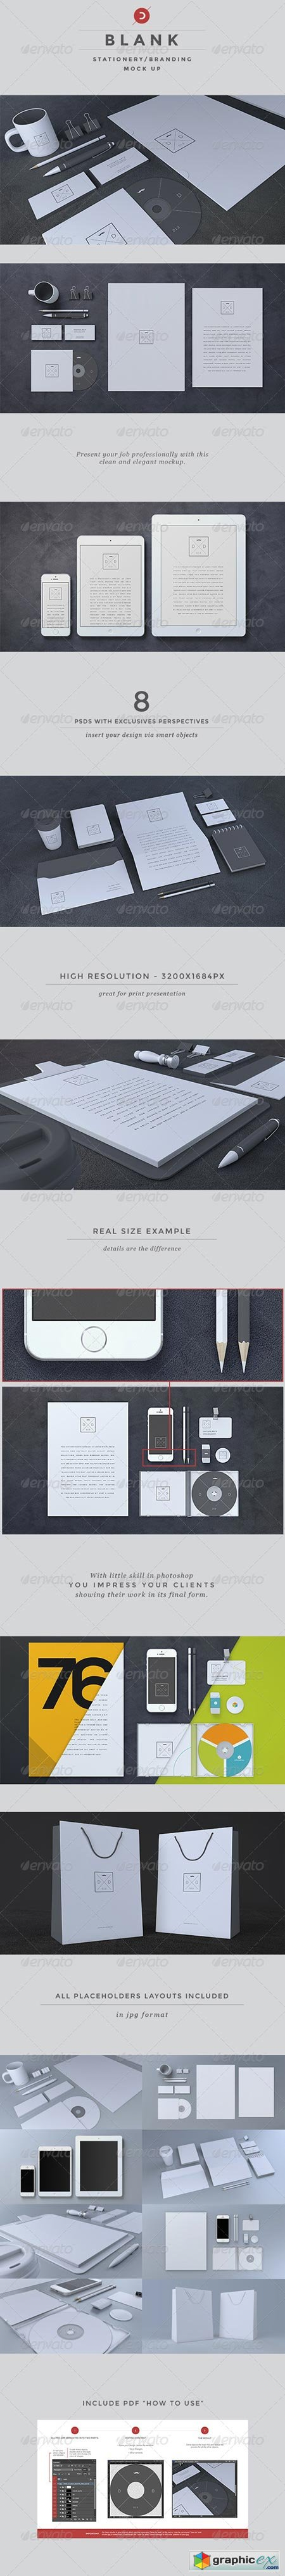 Blank Stationery Branding Mock-Up 6617098